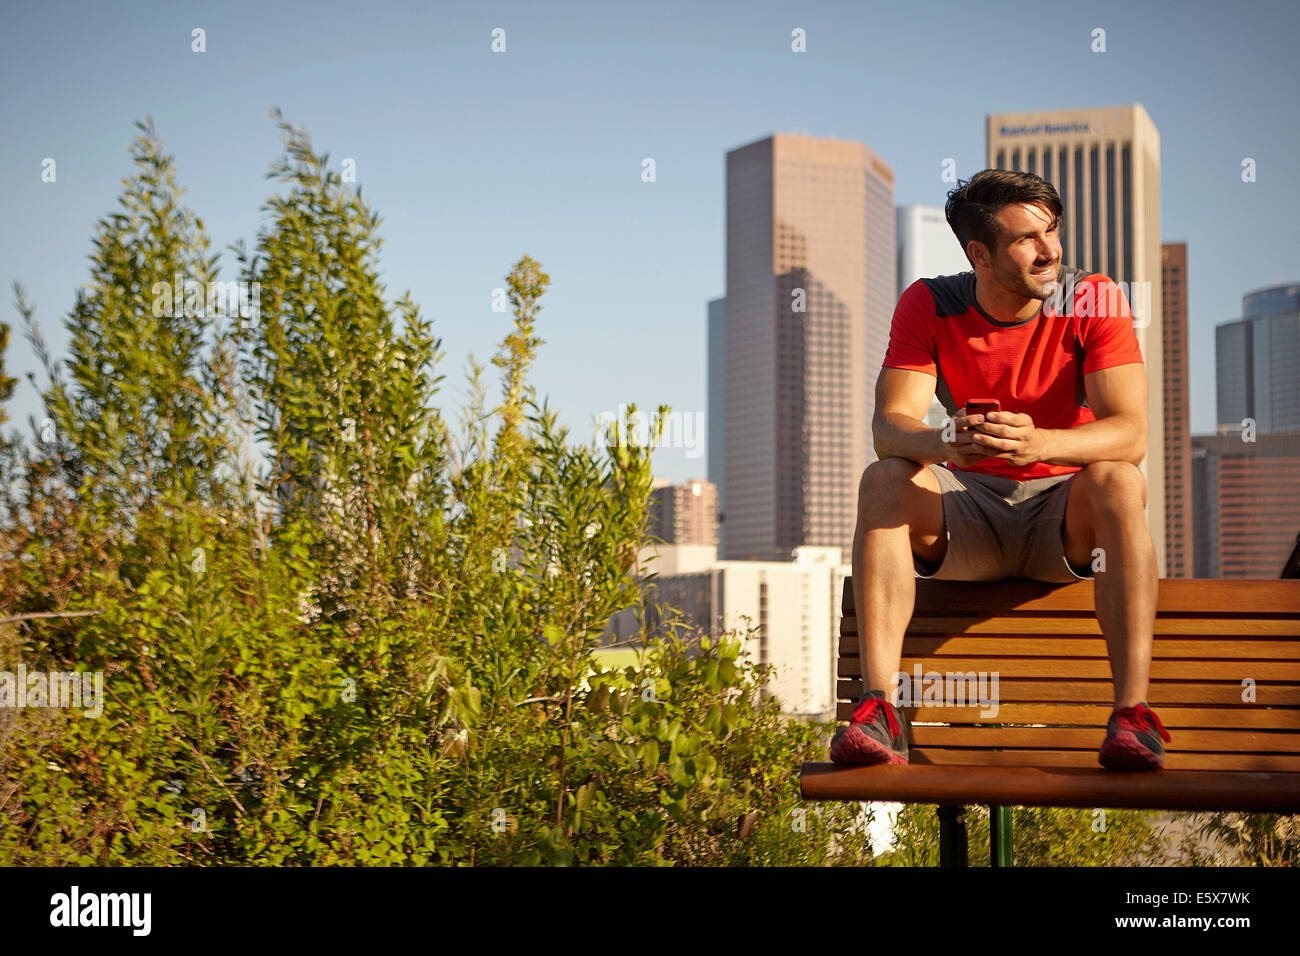 Young male runner taking a break on park bench - Stock Image